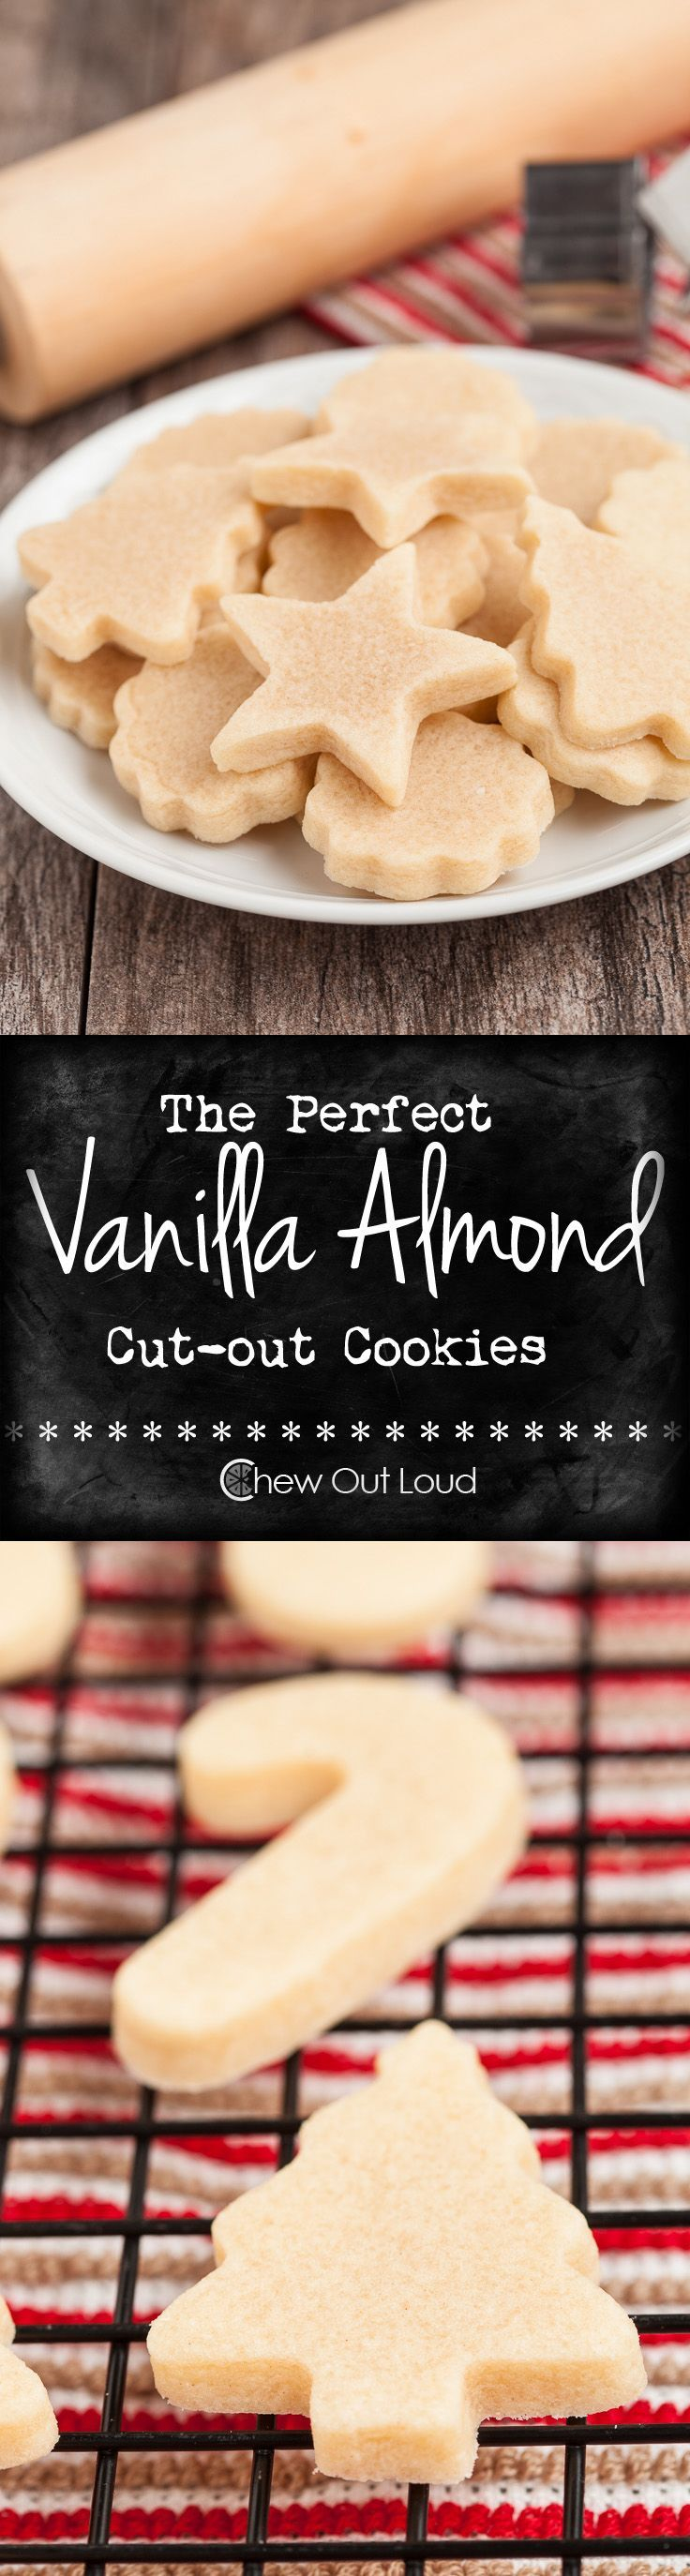 Perfect Vanilla Almond Cut-out Cookies - Easy and fuss free.  Buttery, tender cut-out cookies that keep their shape well.  Perfect for decorating. #holiday #christmas #recipe